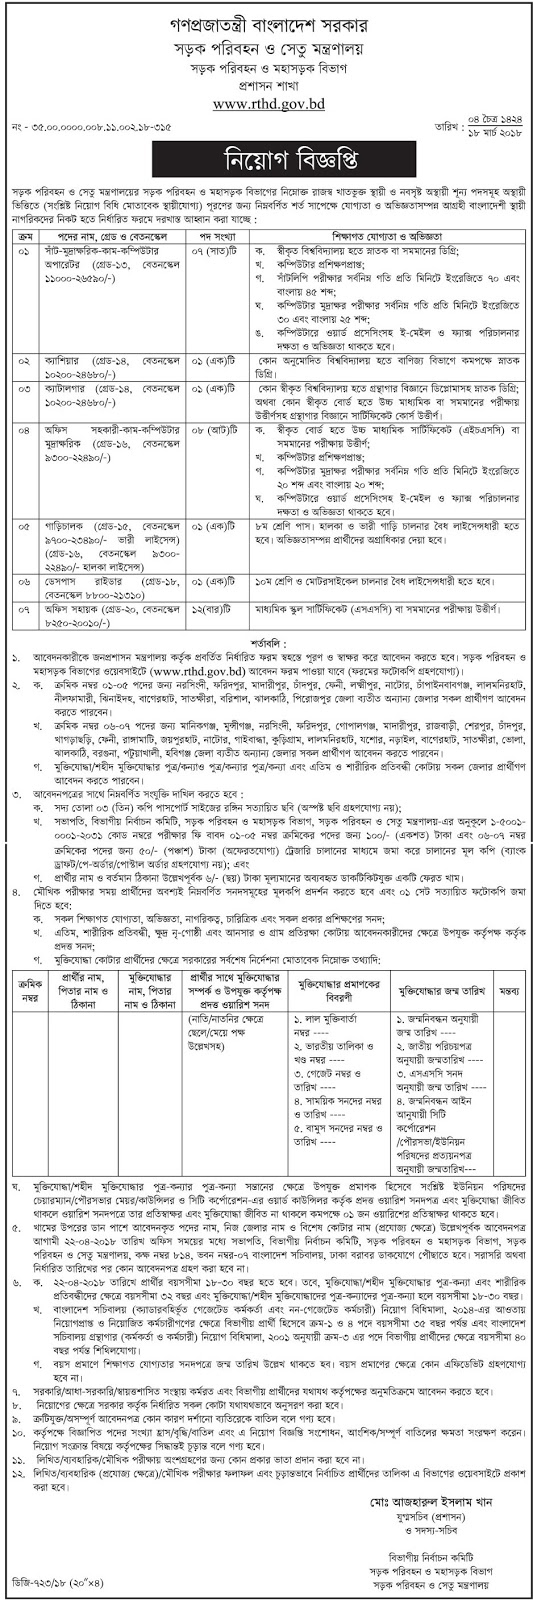 Road Transport And Highways Division (RTHD) Job Circular 2018